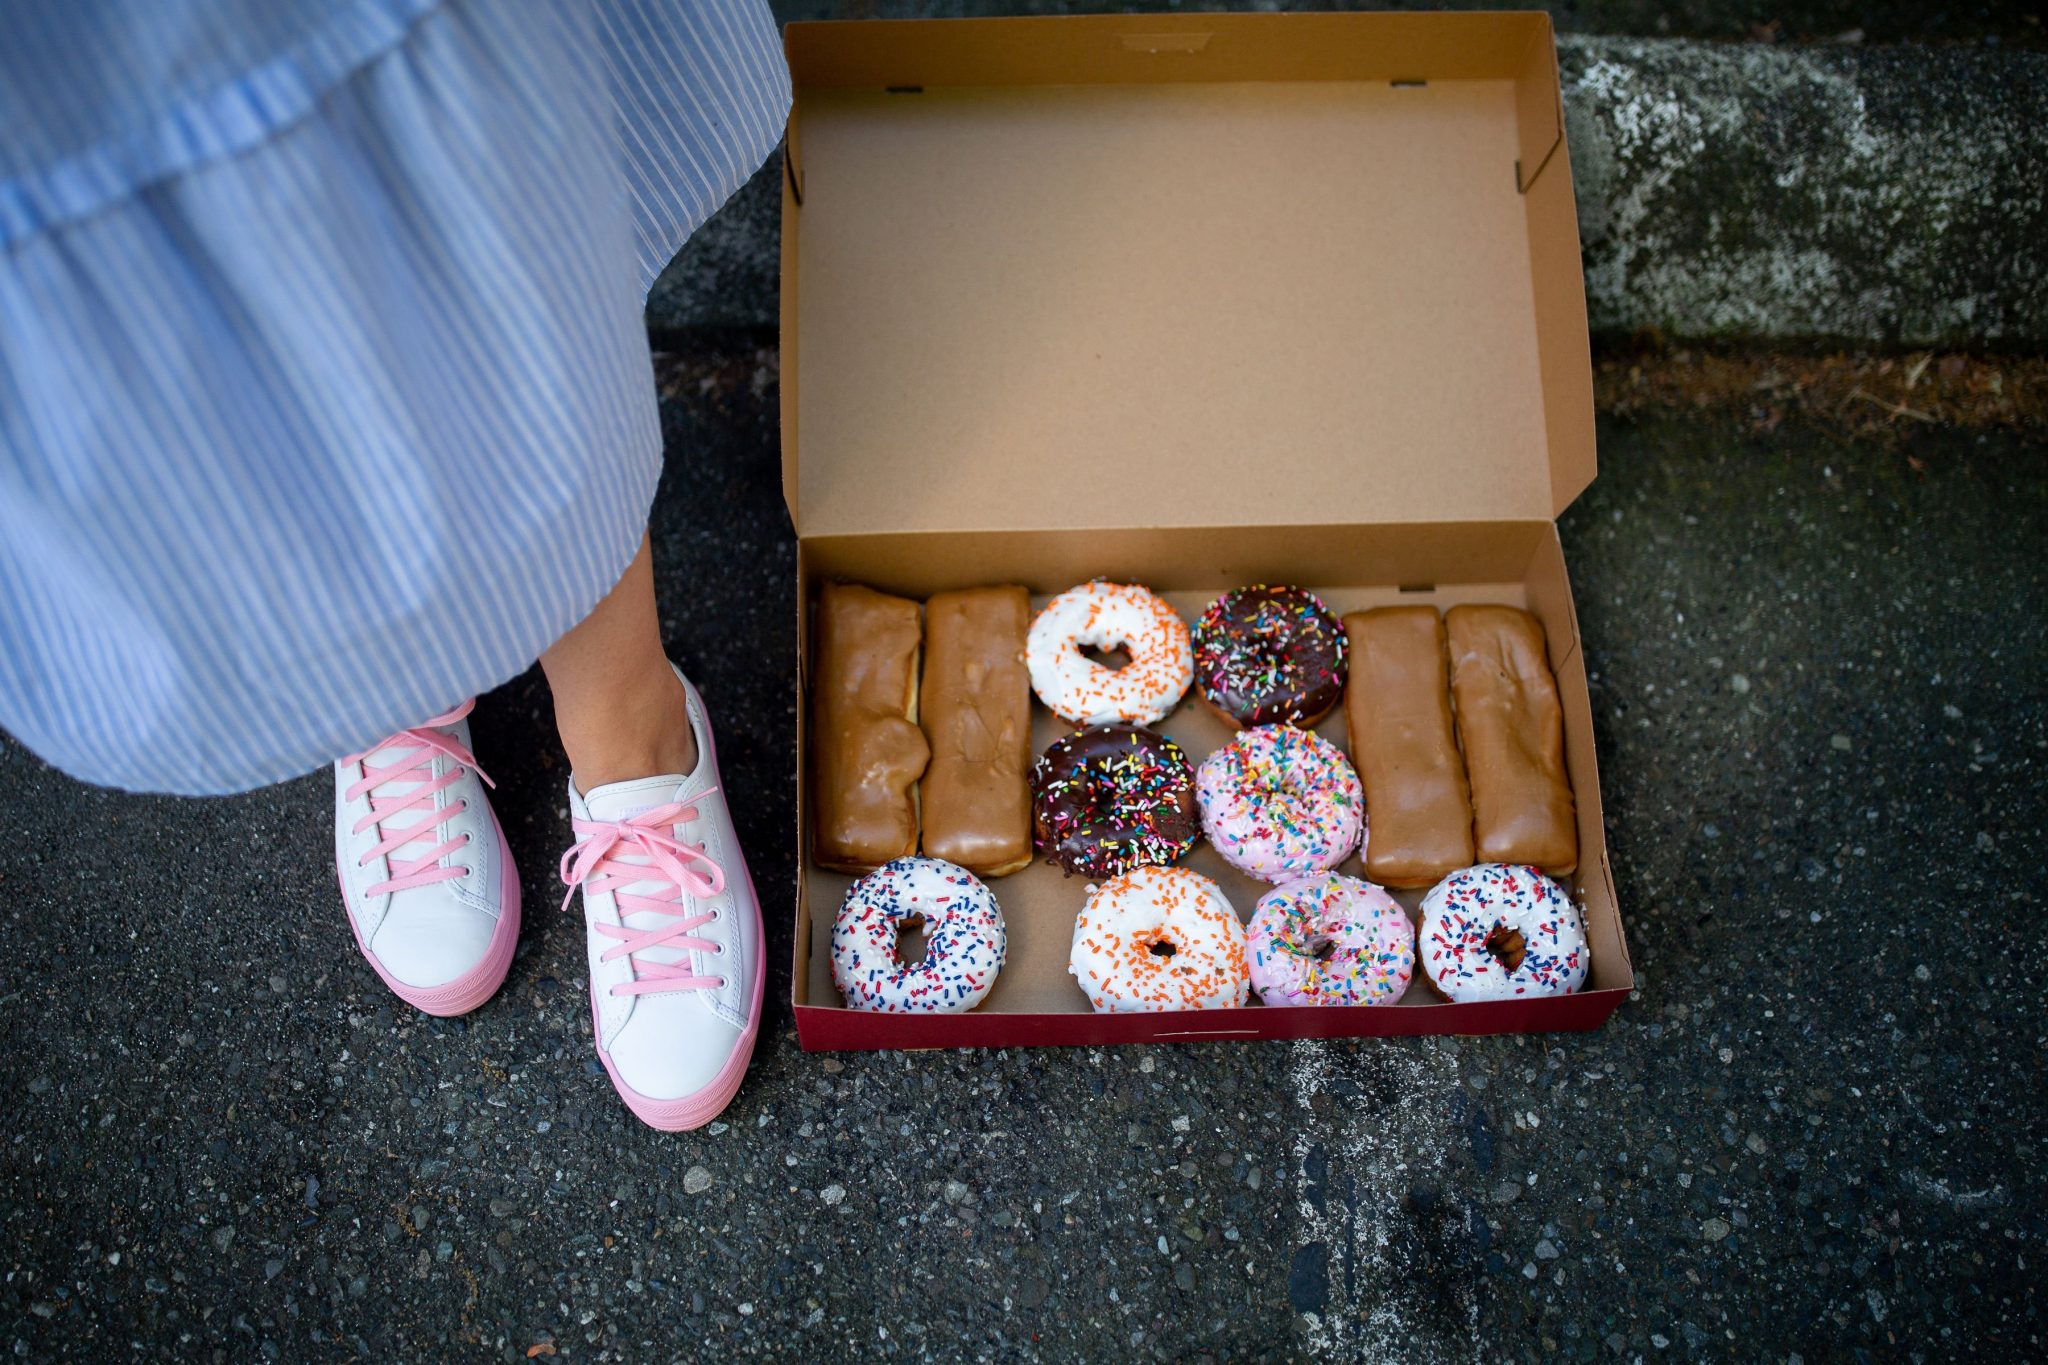 national donut day + ked shoes